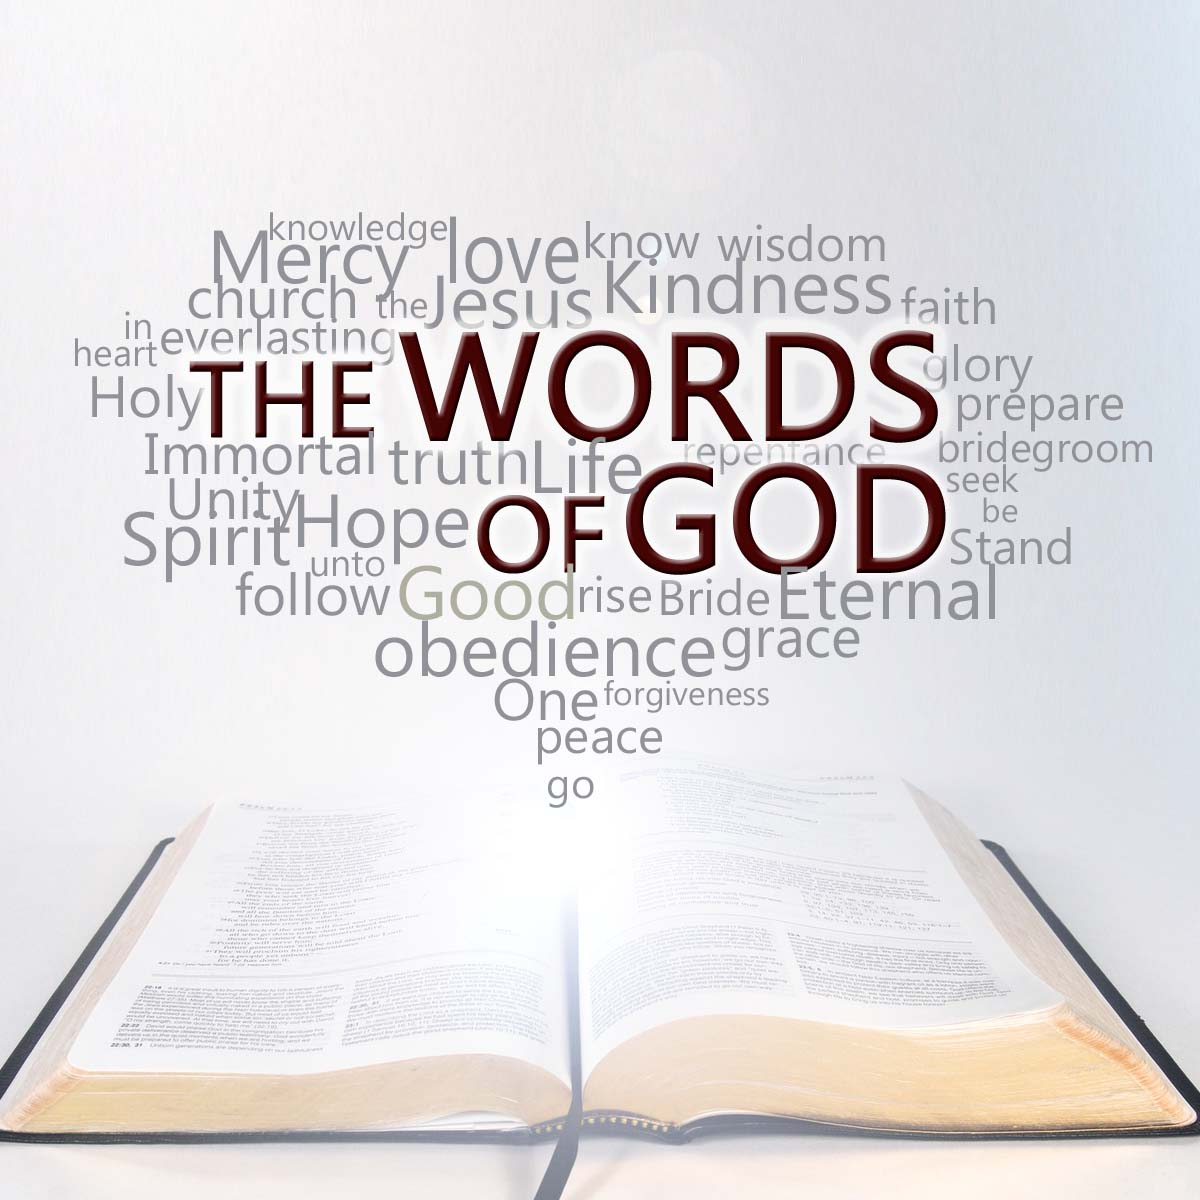 benefits of studying the word of god